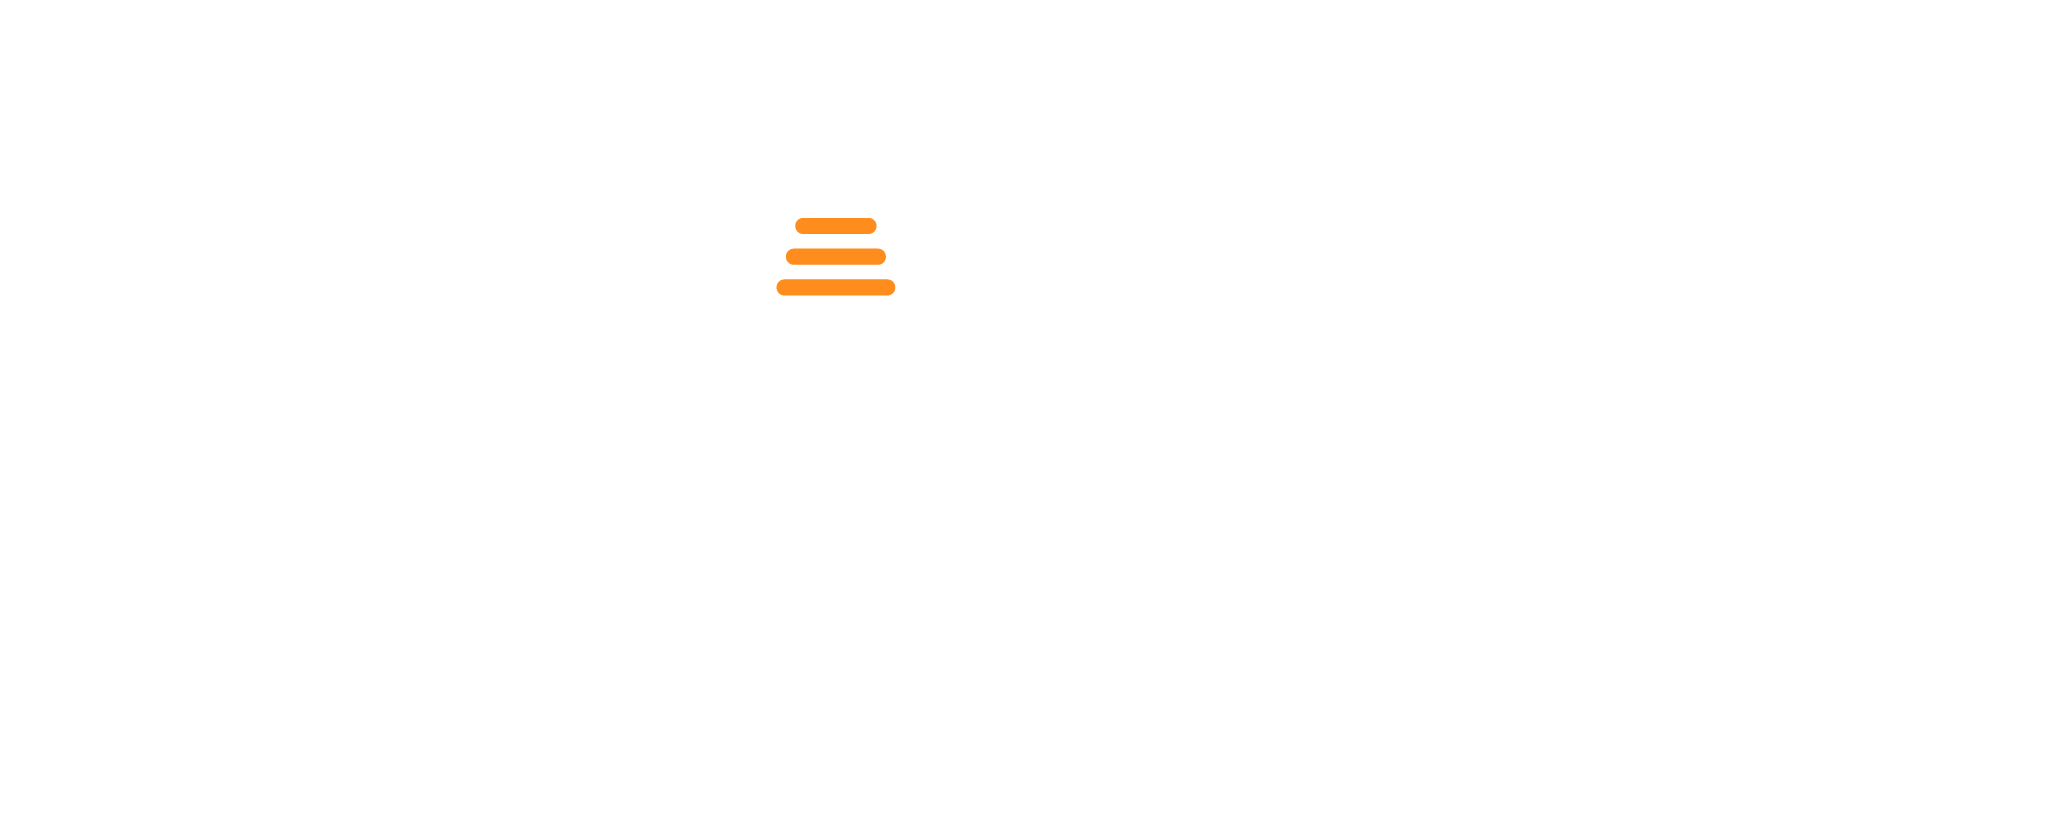 nubox-blanco2.png